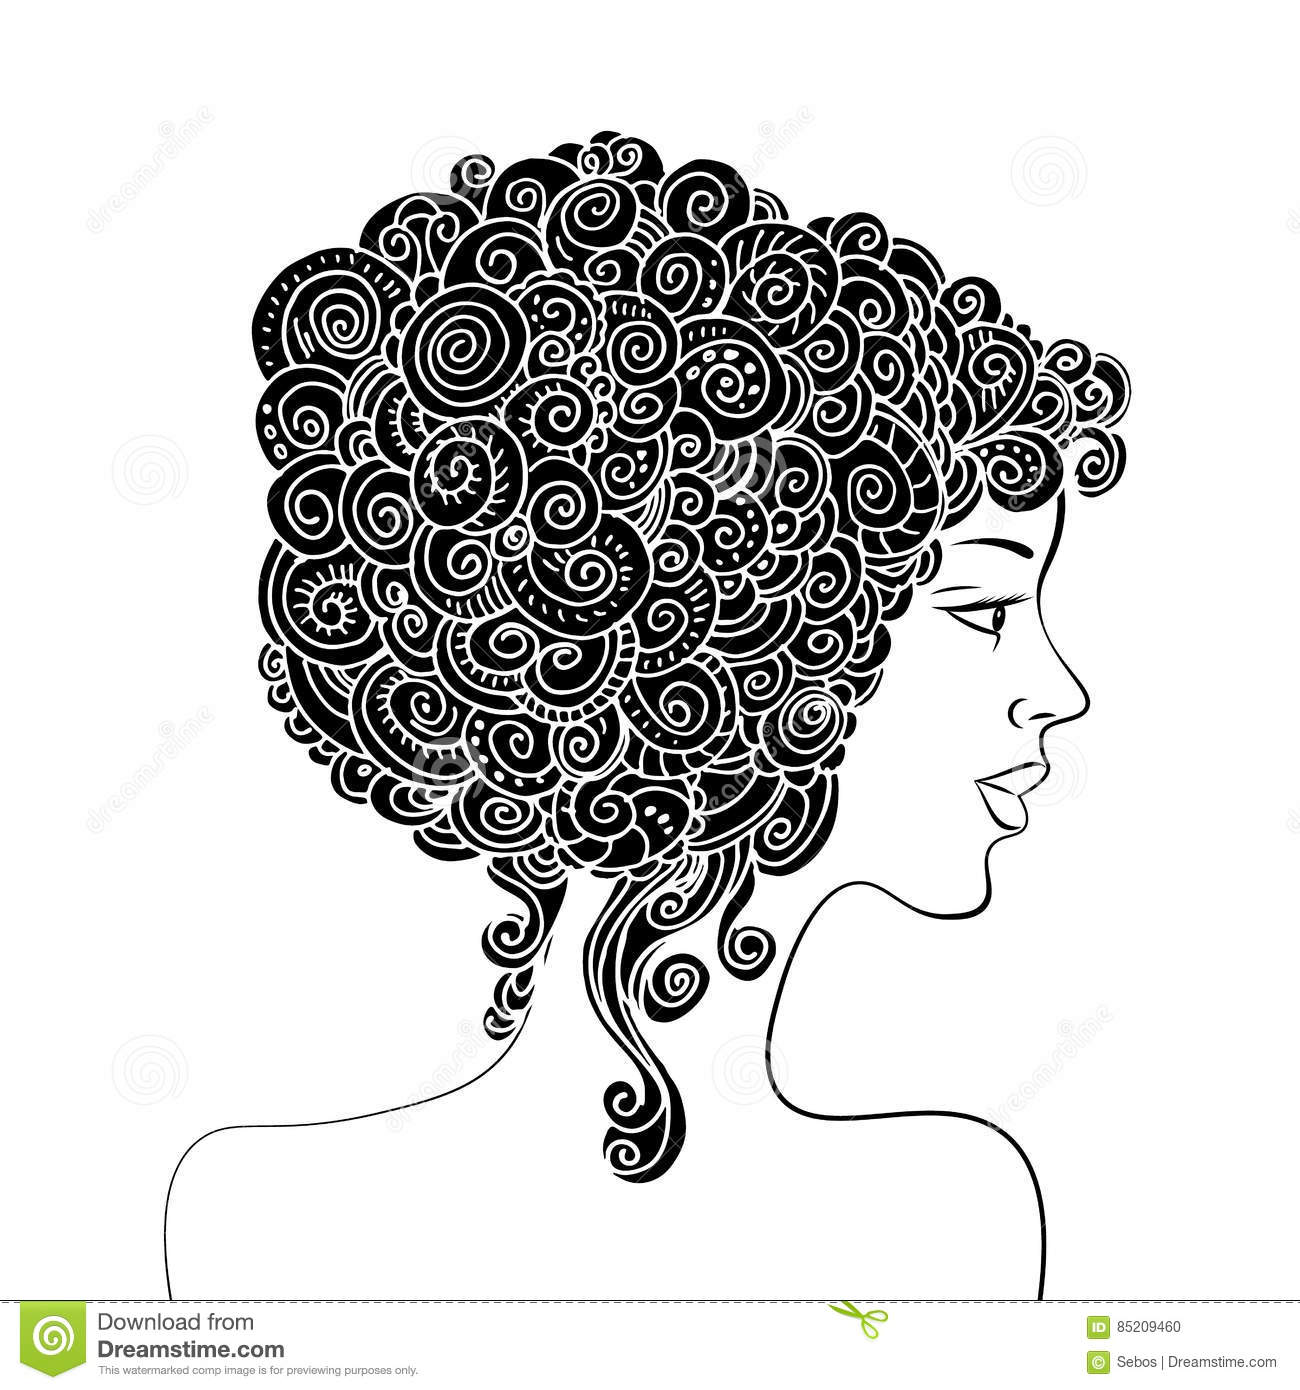 Silhouette Of A Beautiful Woman With Curly Hair Monochrome Abstract